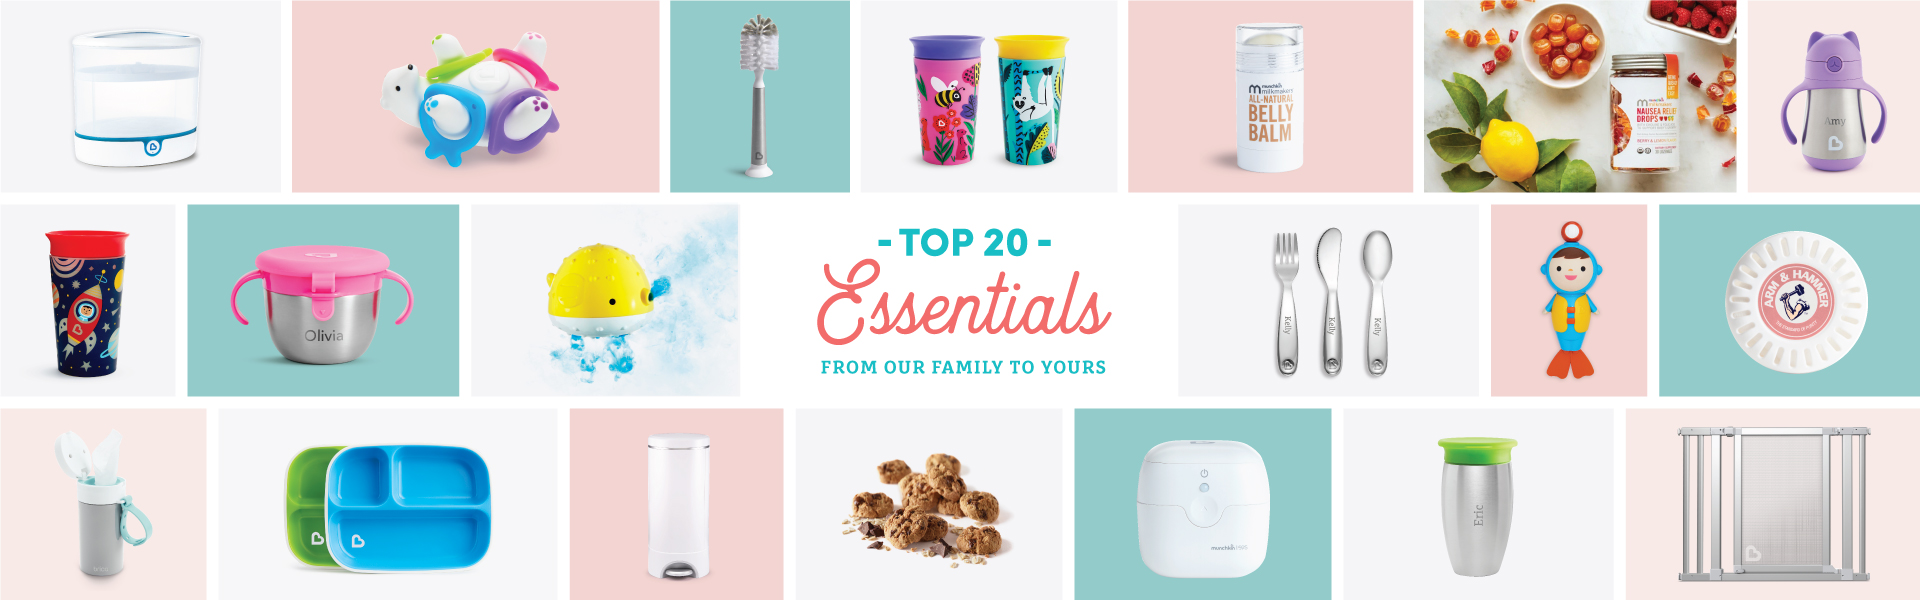 Top 20 Essentials for Toddlers, Babies, & Moms